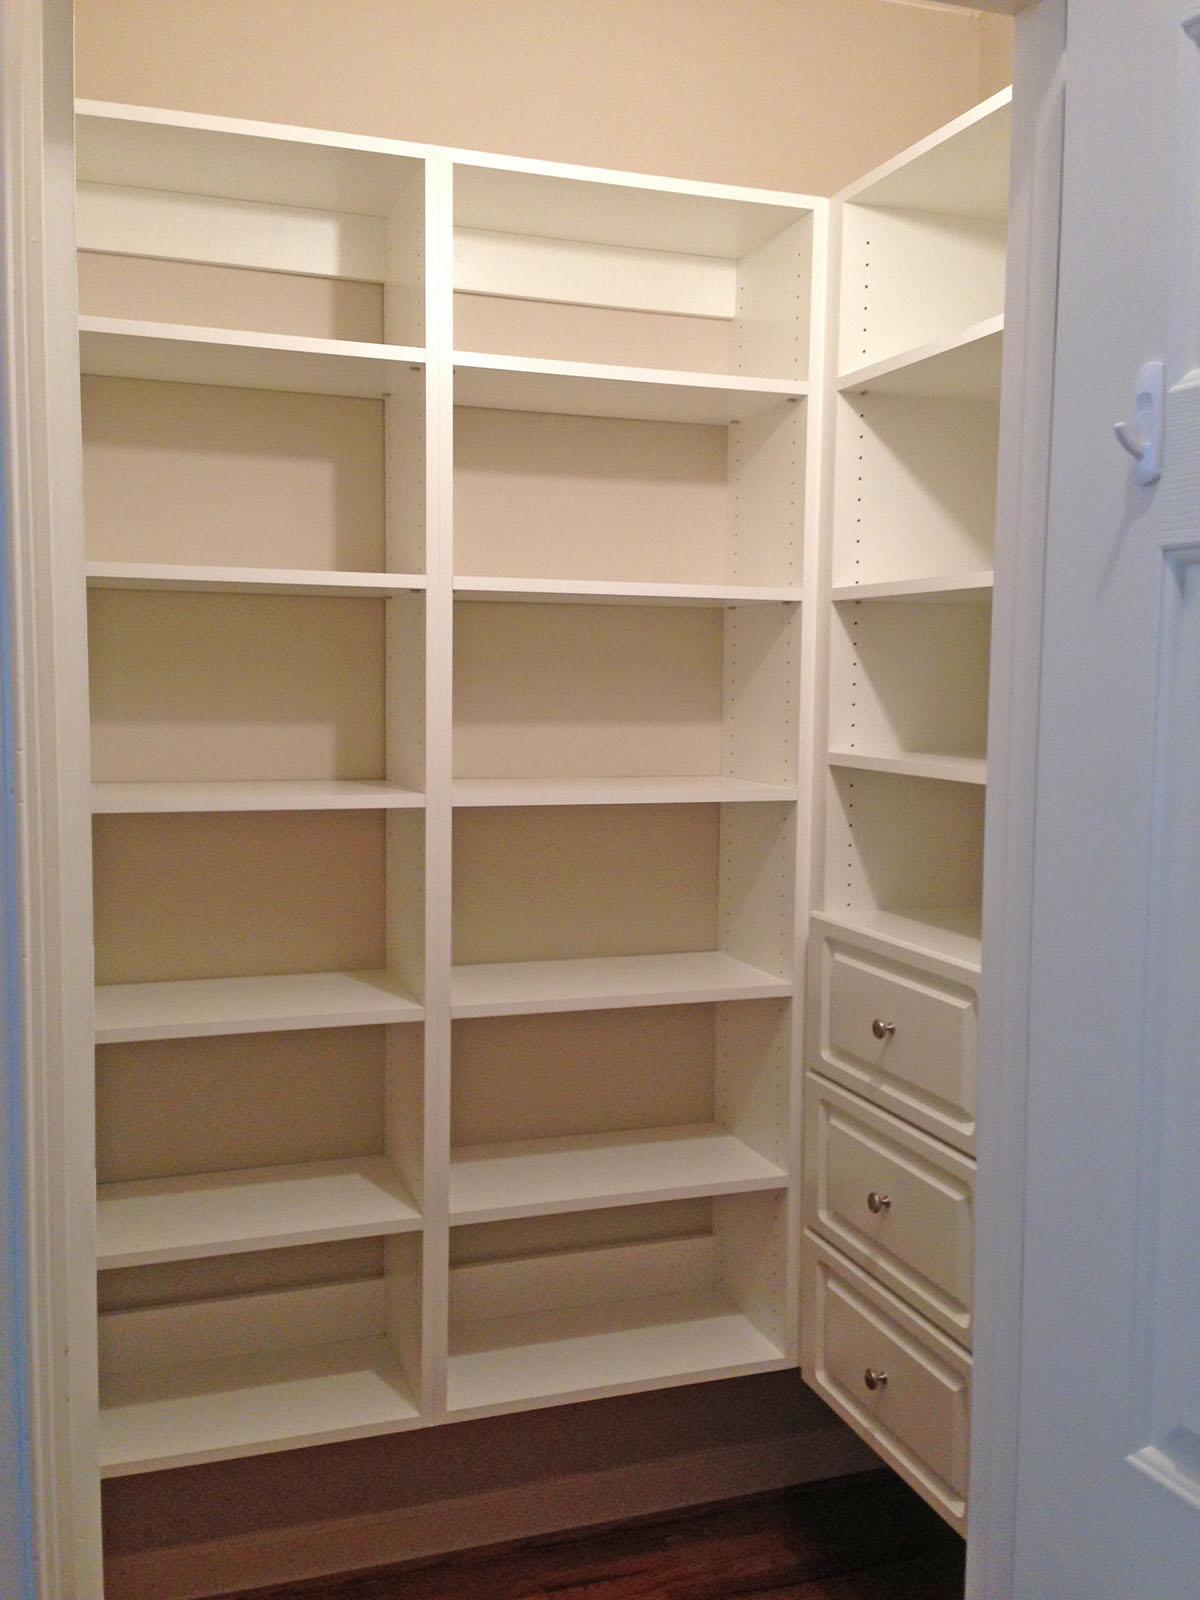 Wardrobe Closet Armoire Organization